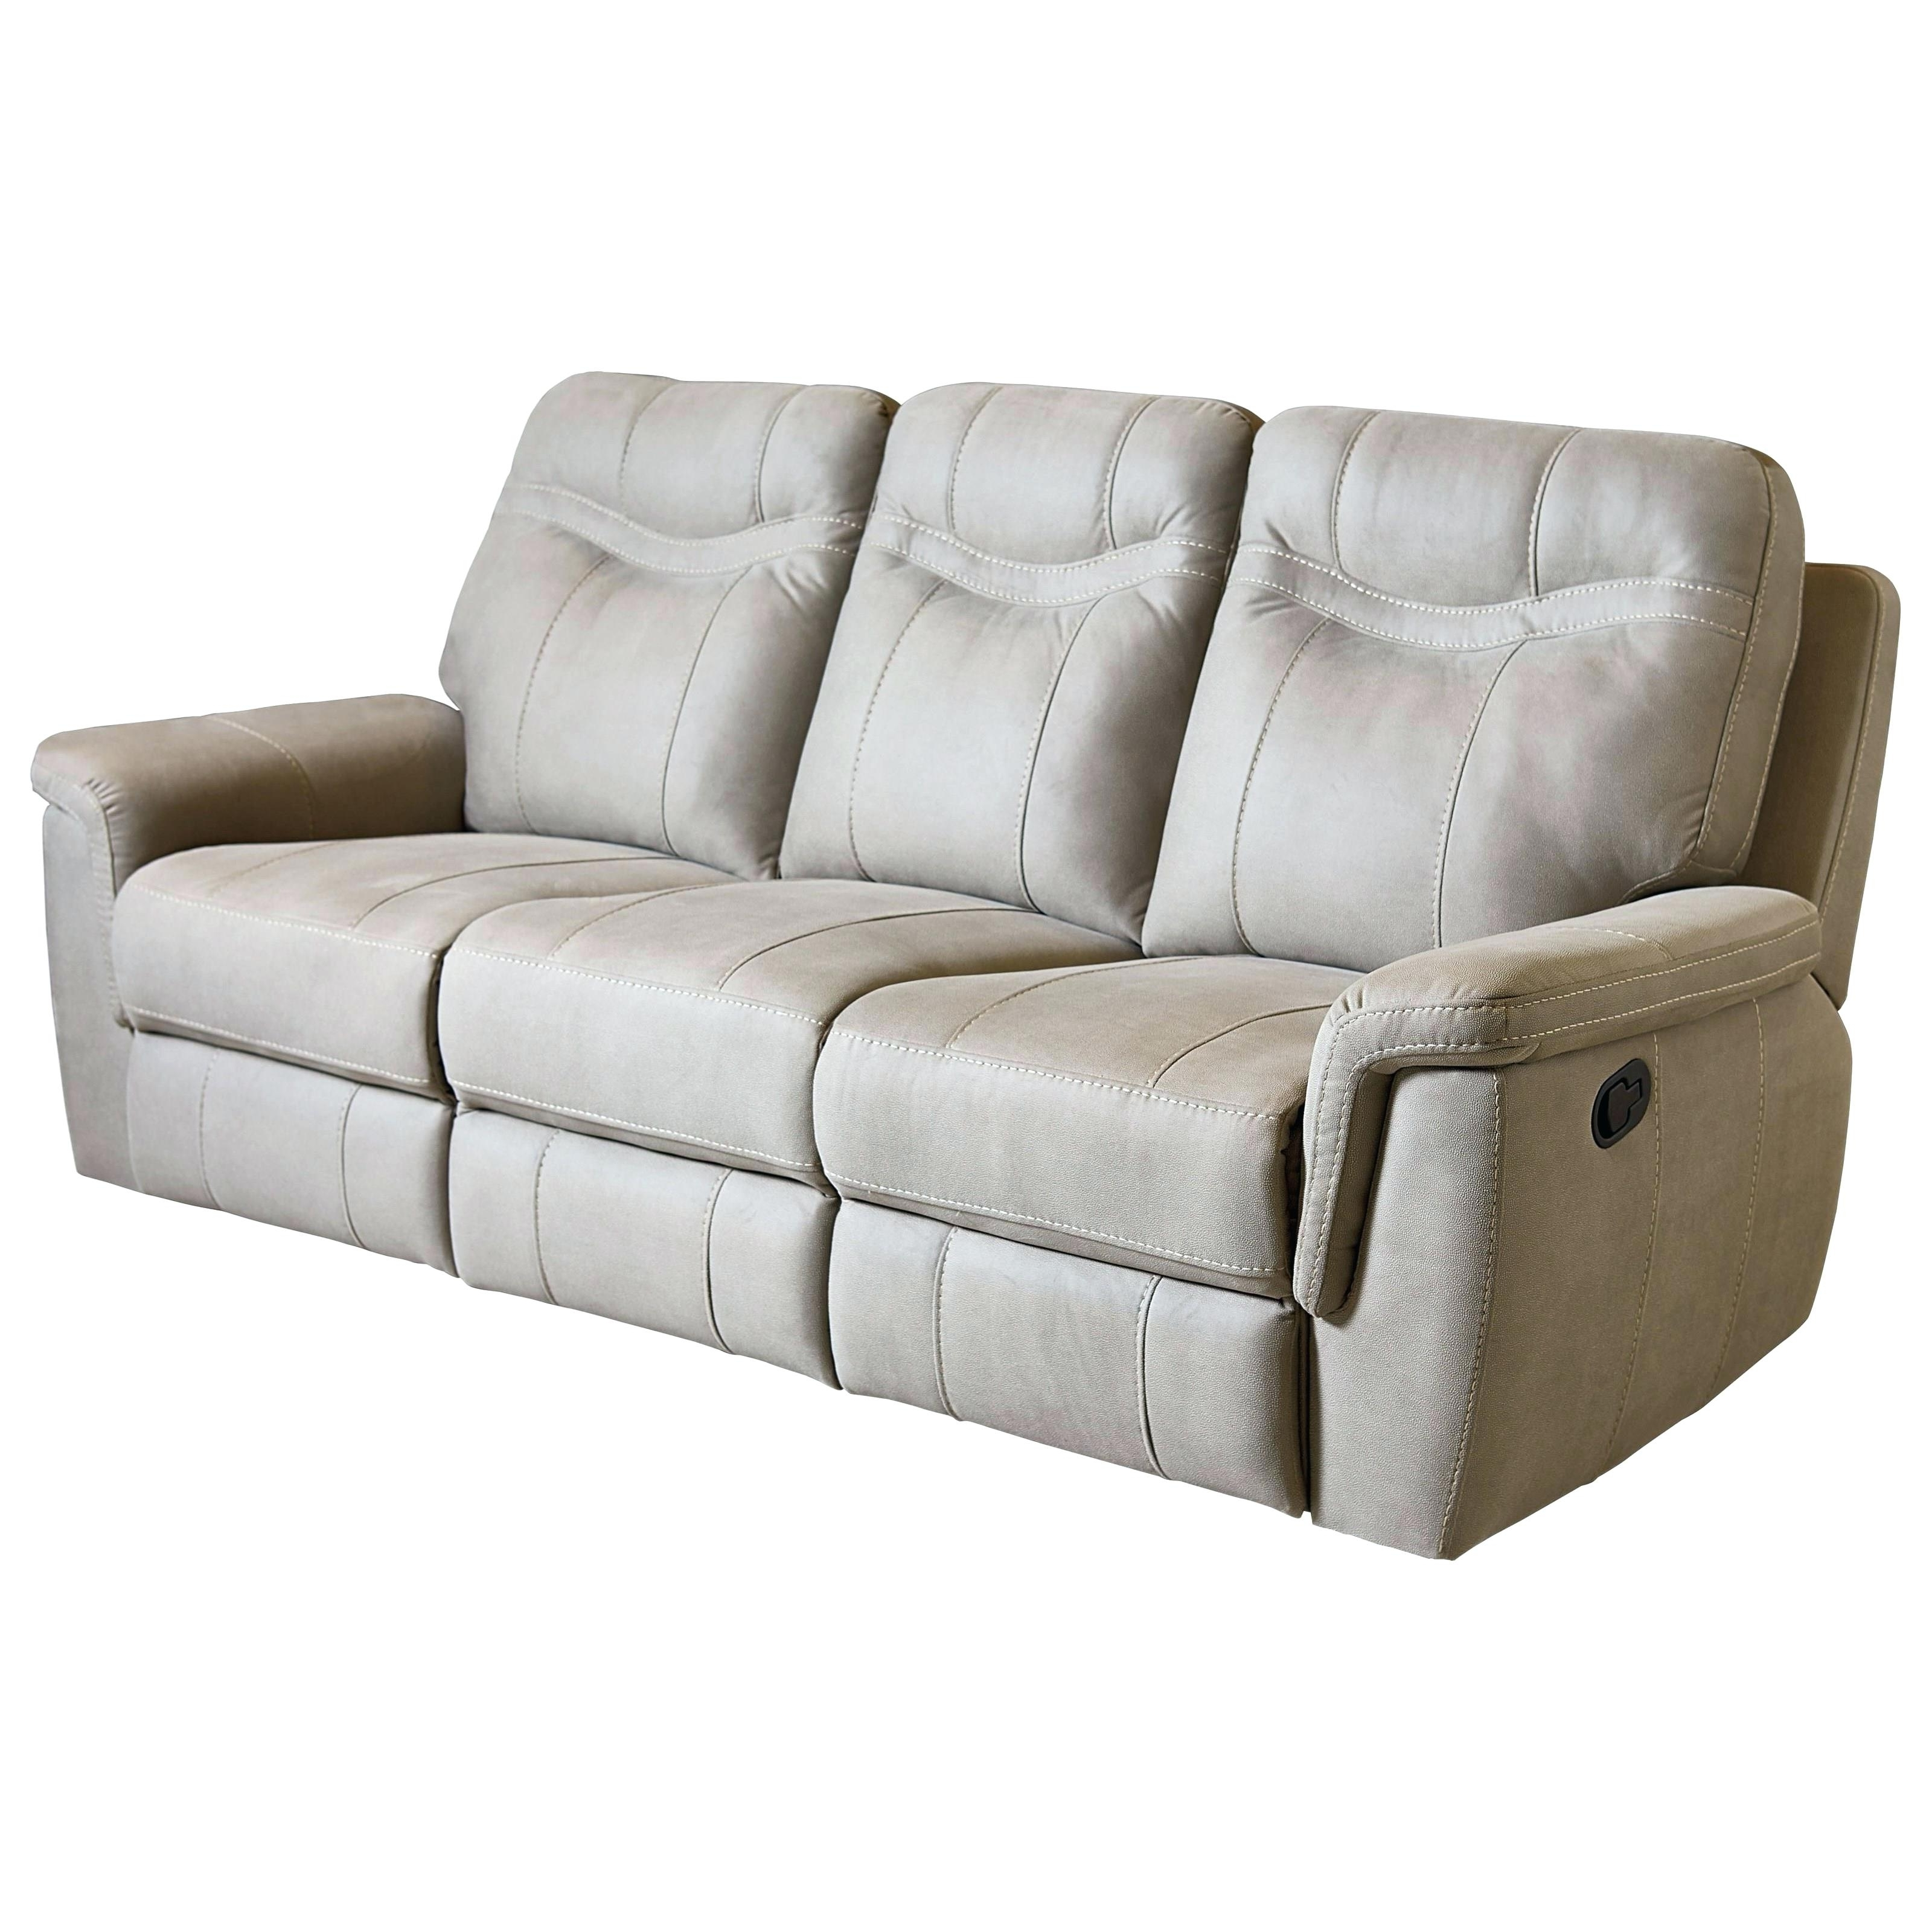 Recent Kijiji London Sectional Sofas Within Reclining Sofas Sofa Leather Brown Recliner For Sale In London (View 6 of 15)